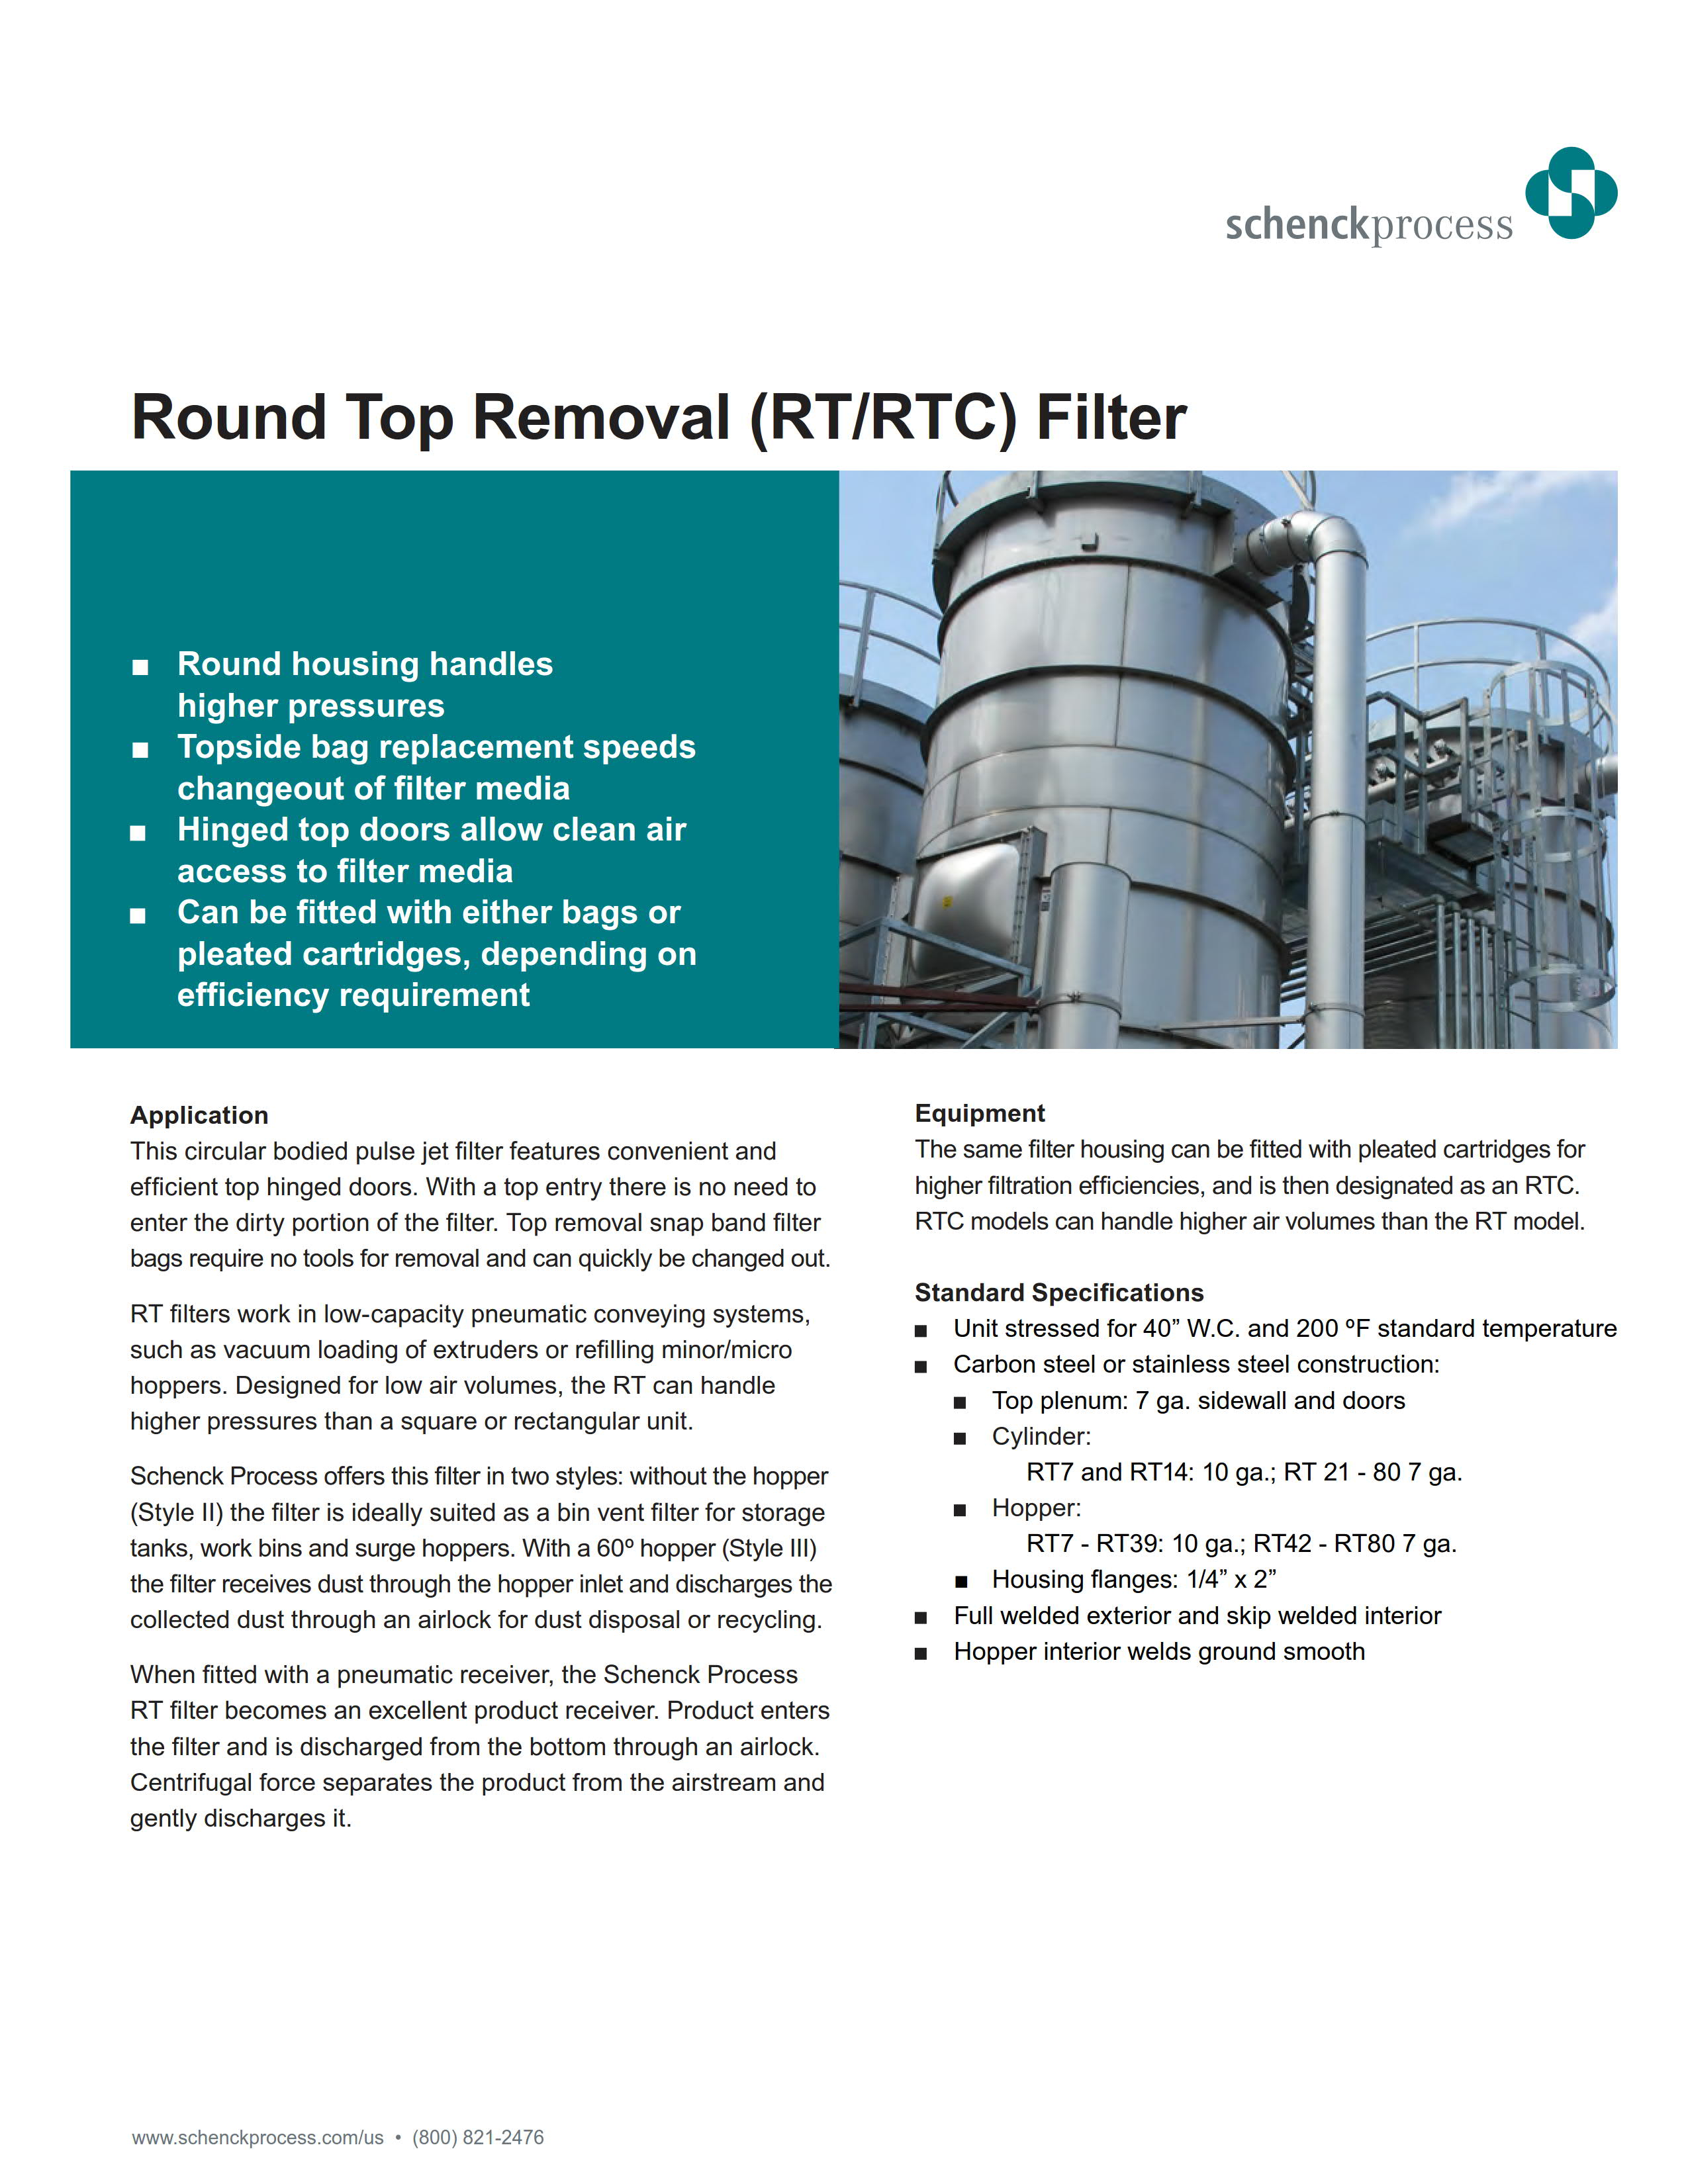 Round Top Removal (RT/RTC) Filter